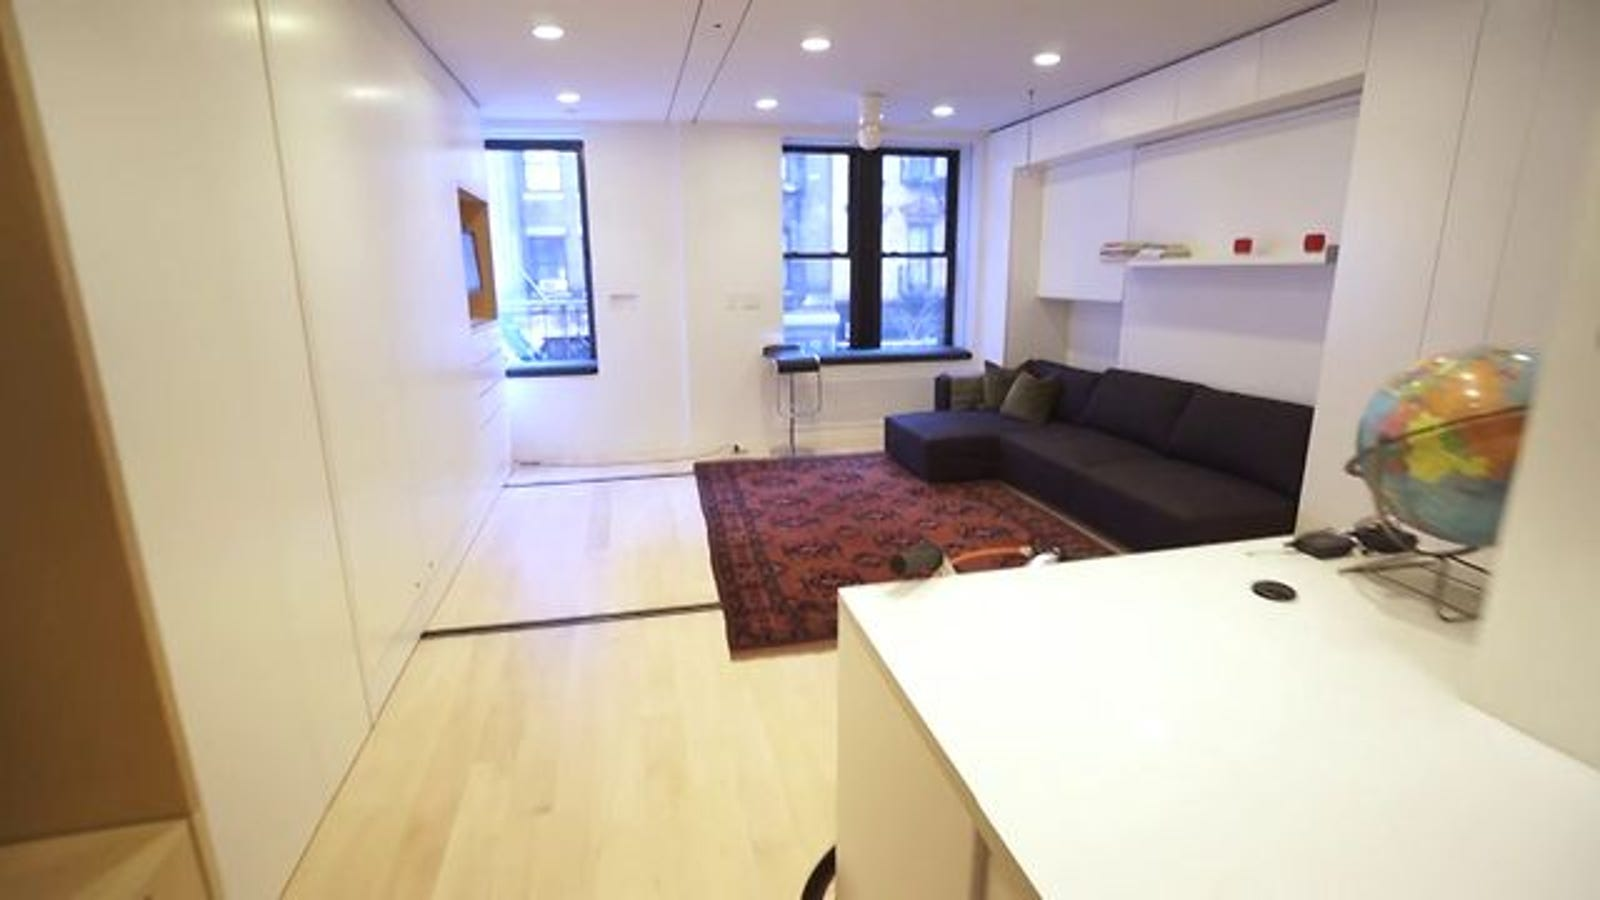 The Tiny Transforming Apartment That Packs Eight Rooms into 420 Square Feet